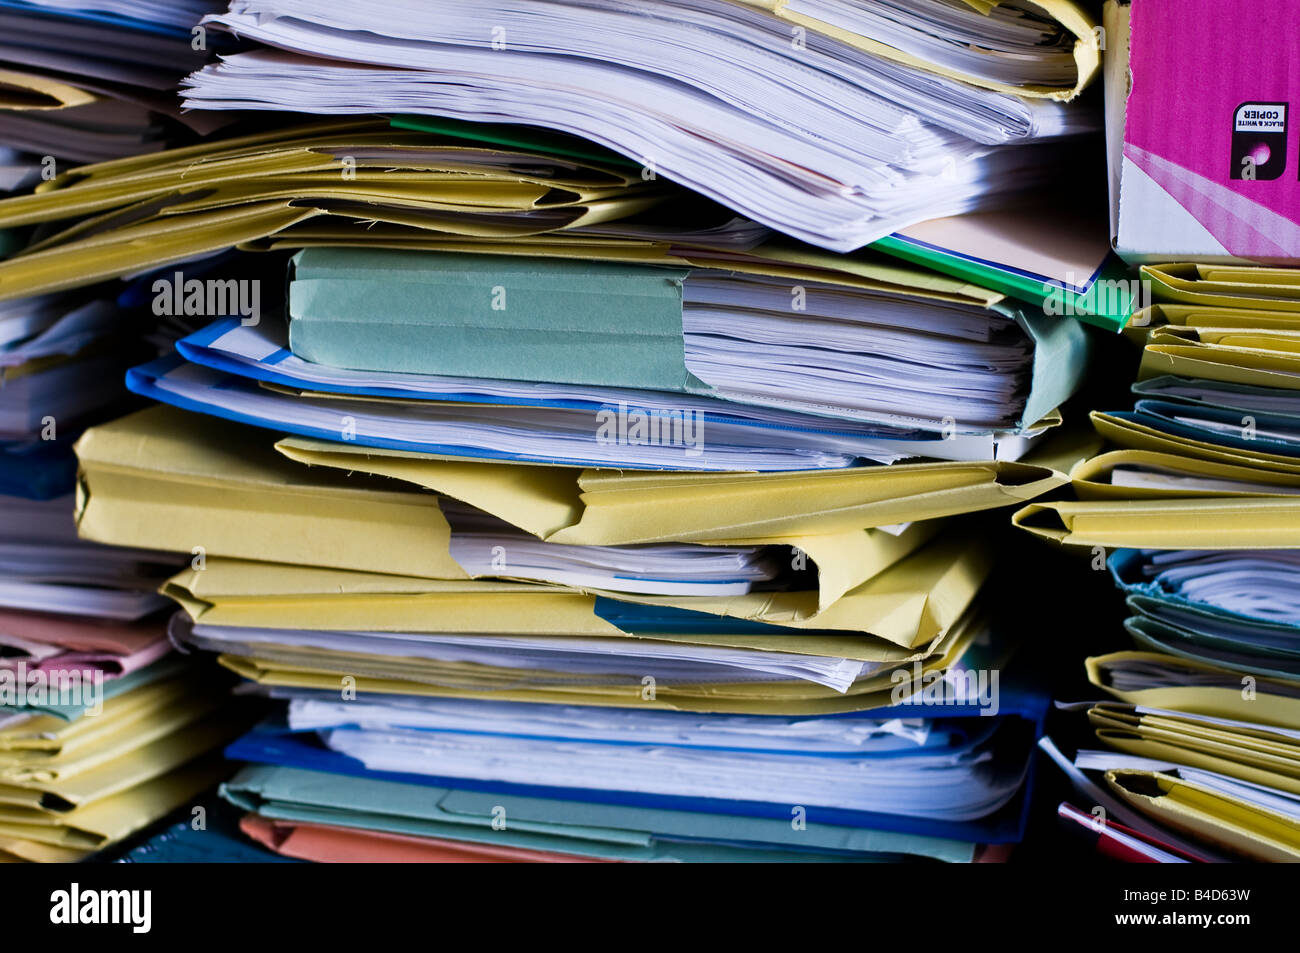 Piles of folders containing paper documents - Stock Image